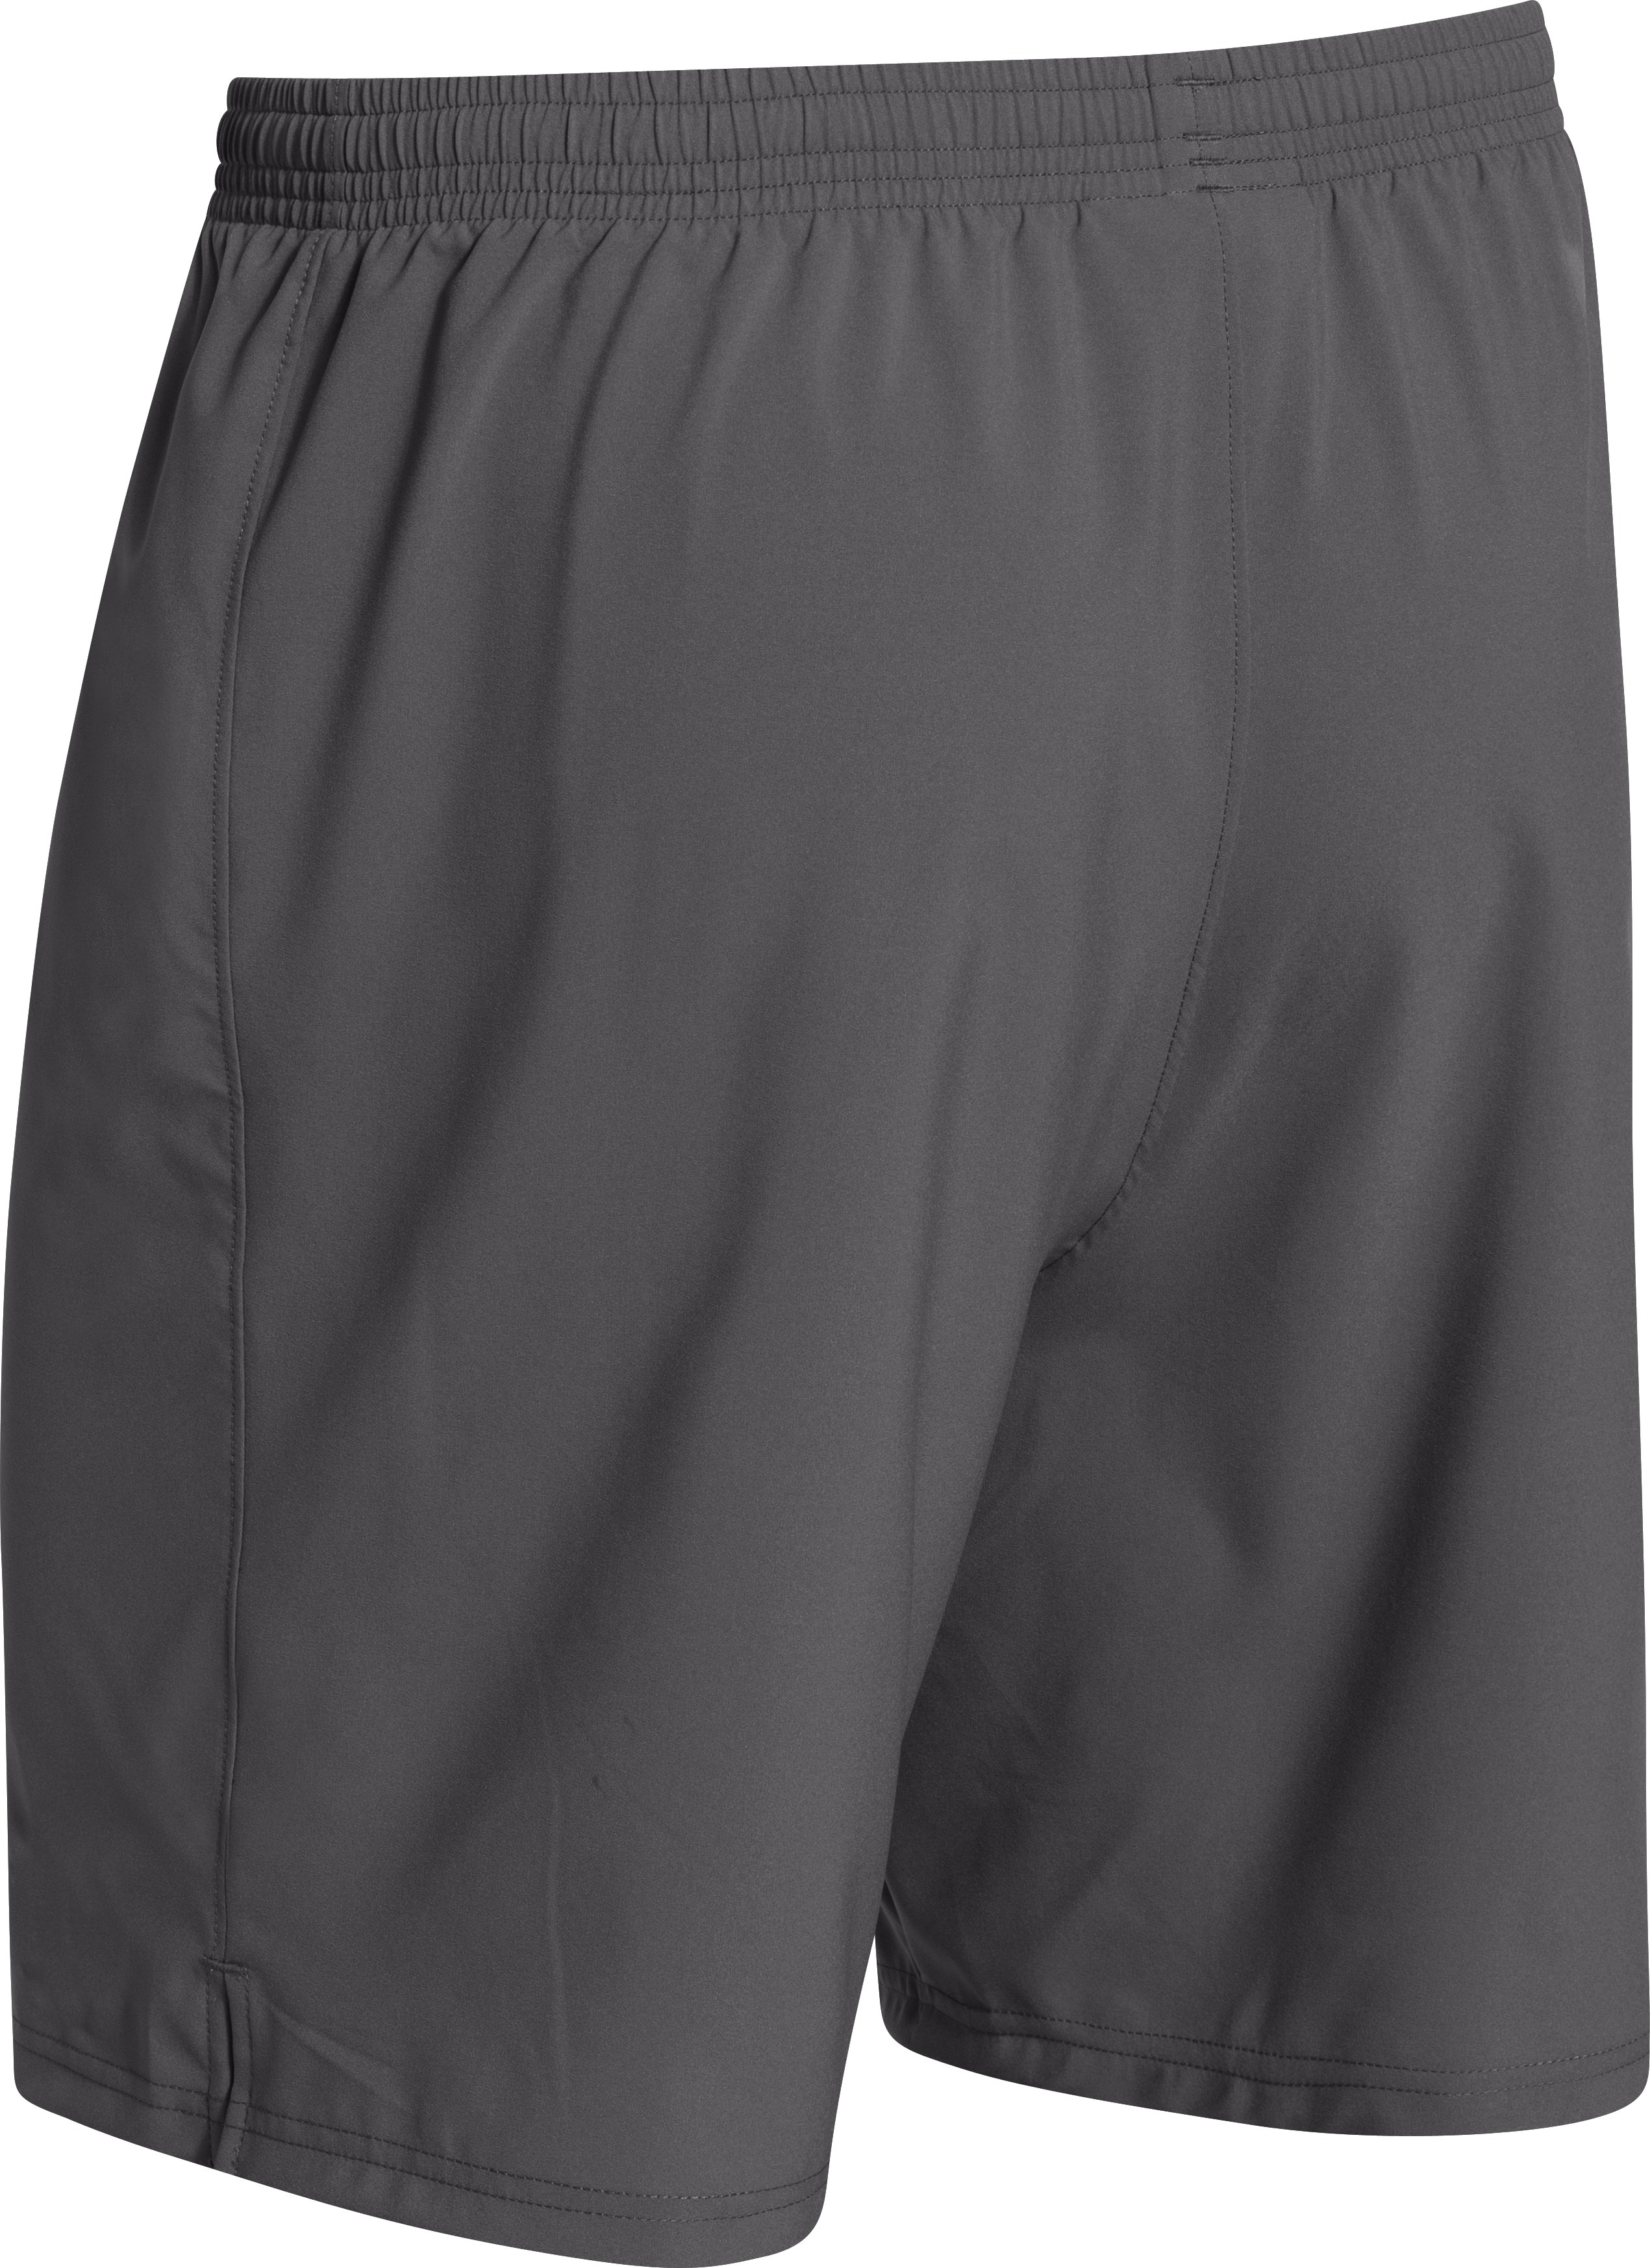 Men's UA Hustle Soccer Shorts, Graphite